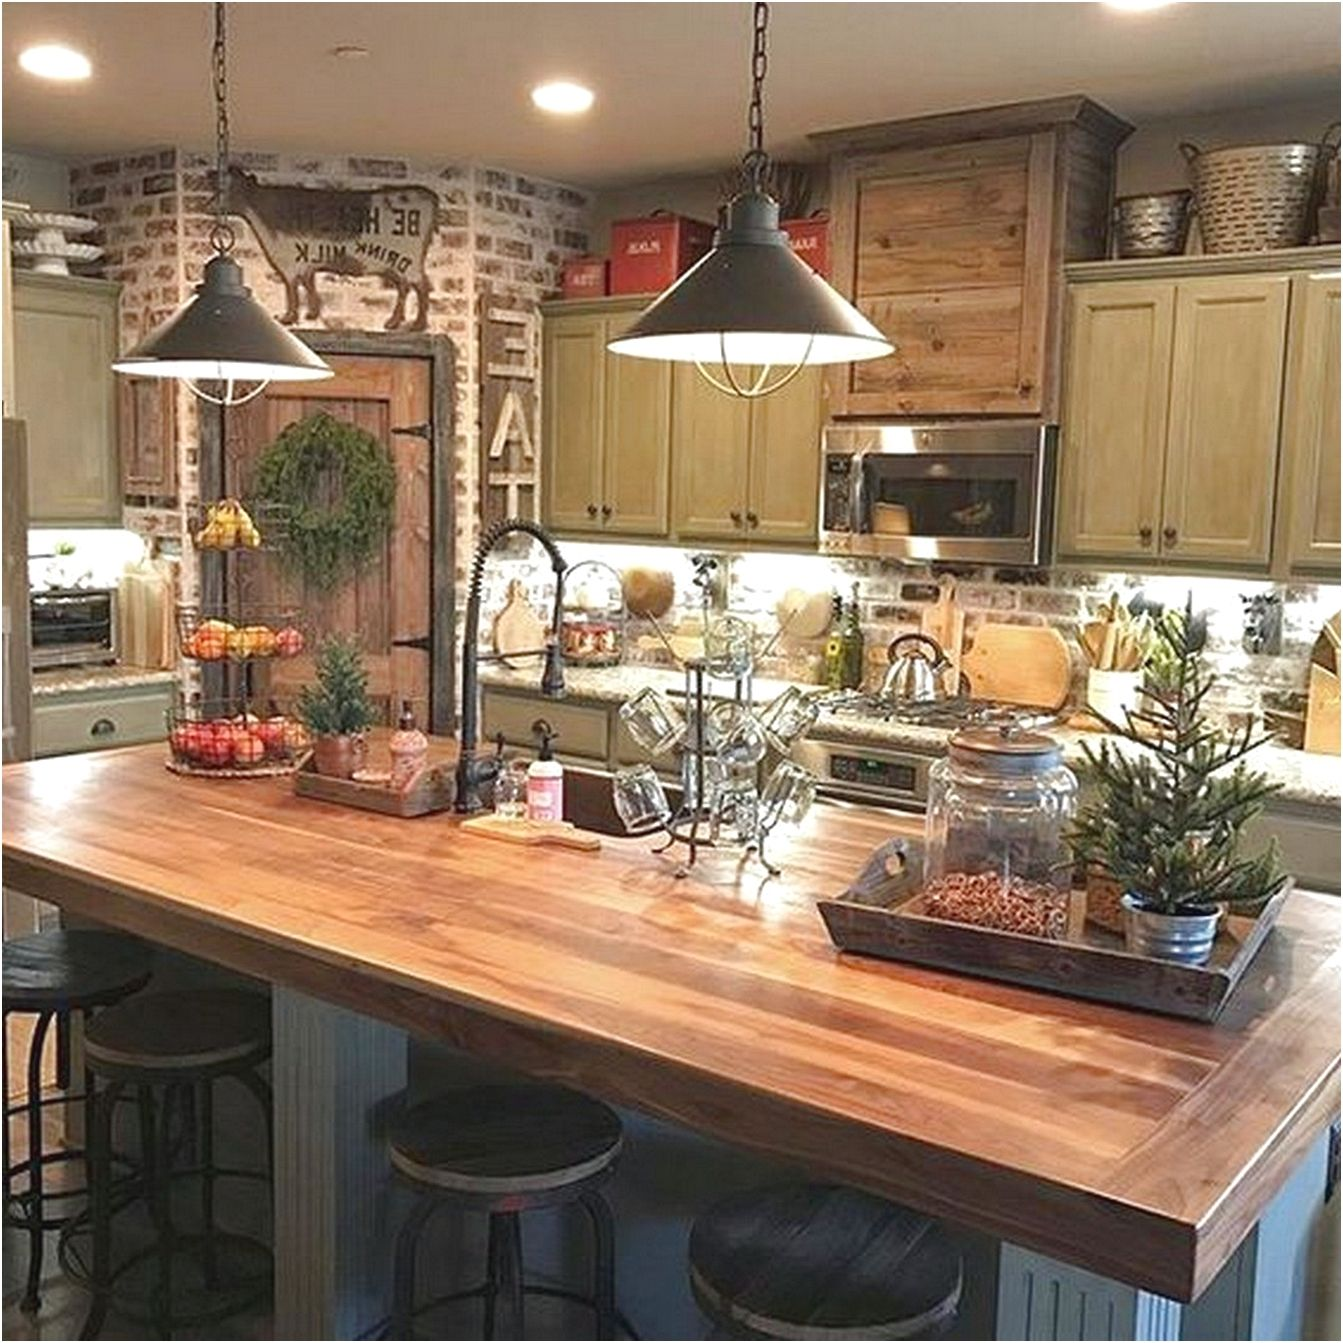 49 affordable contemporary farmhouse designs ideas for home rustic kitchen cabinets country on kitchen cabinets rustic farmhouse style id=19915